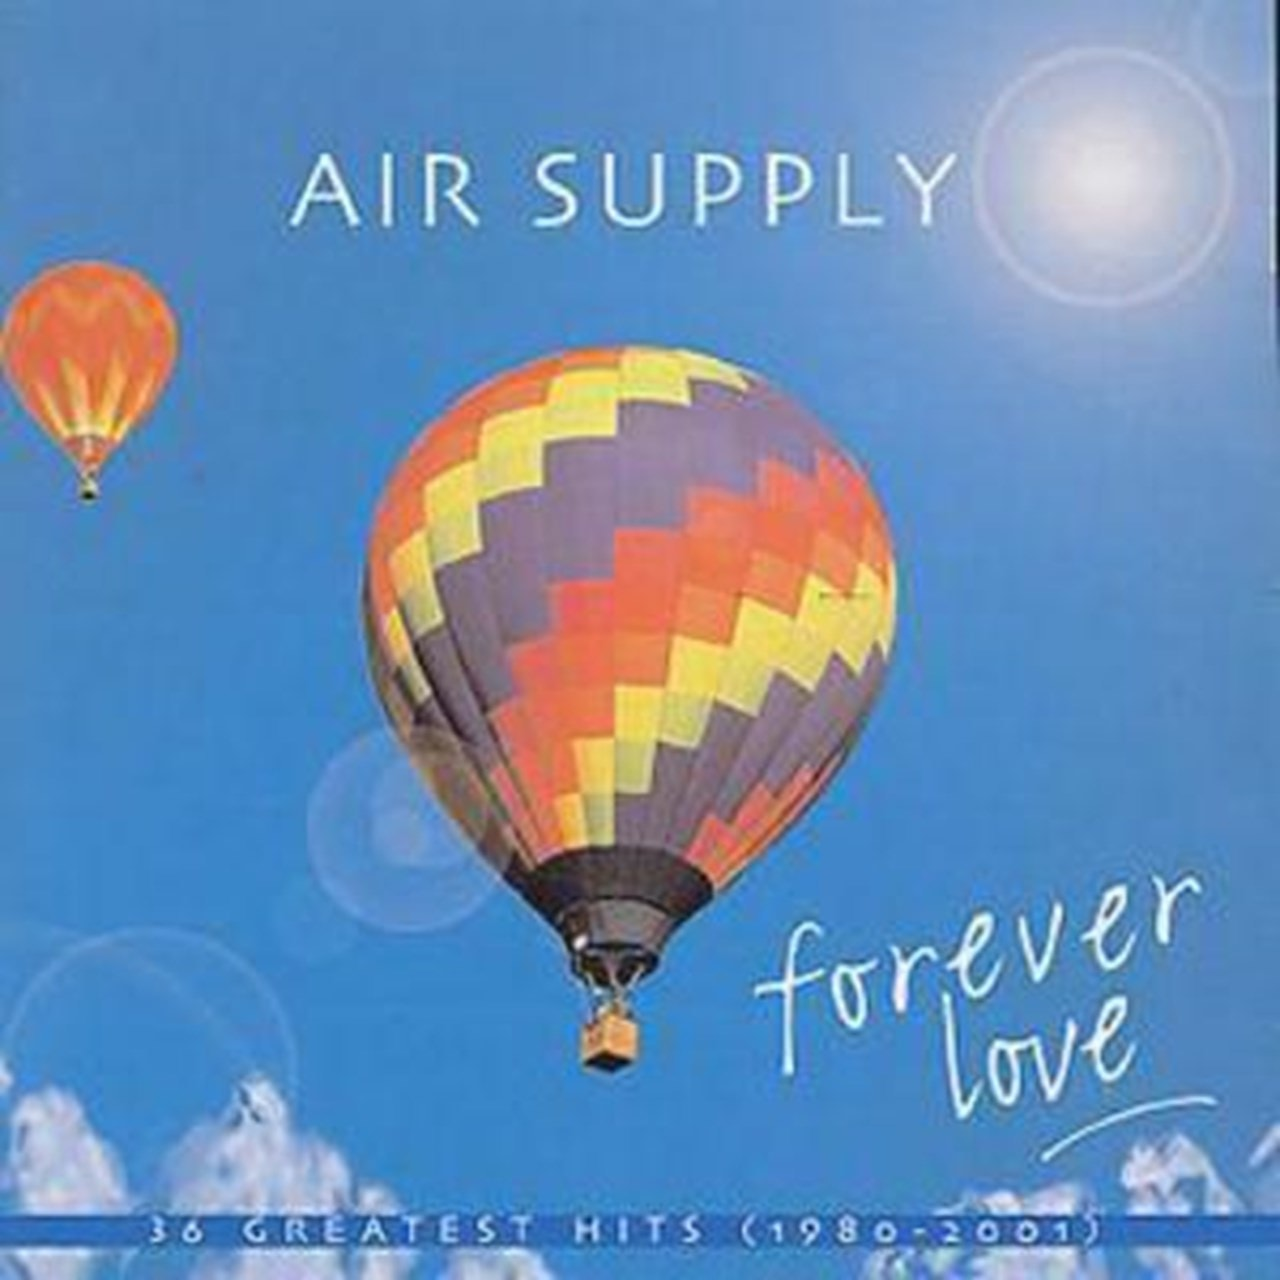 Forever Love - 36 Greatest Hits 1980 - 2001 - 1